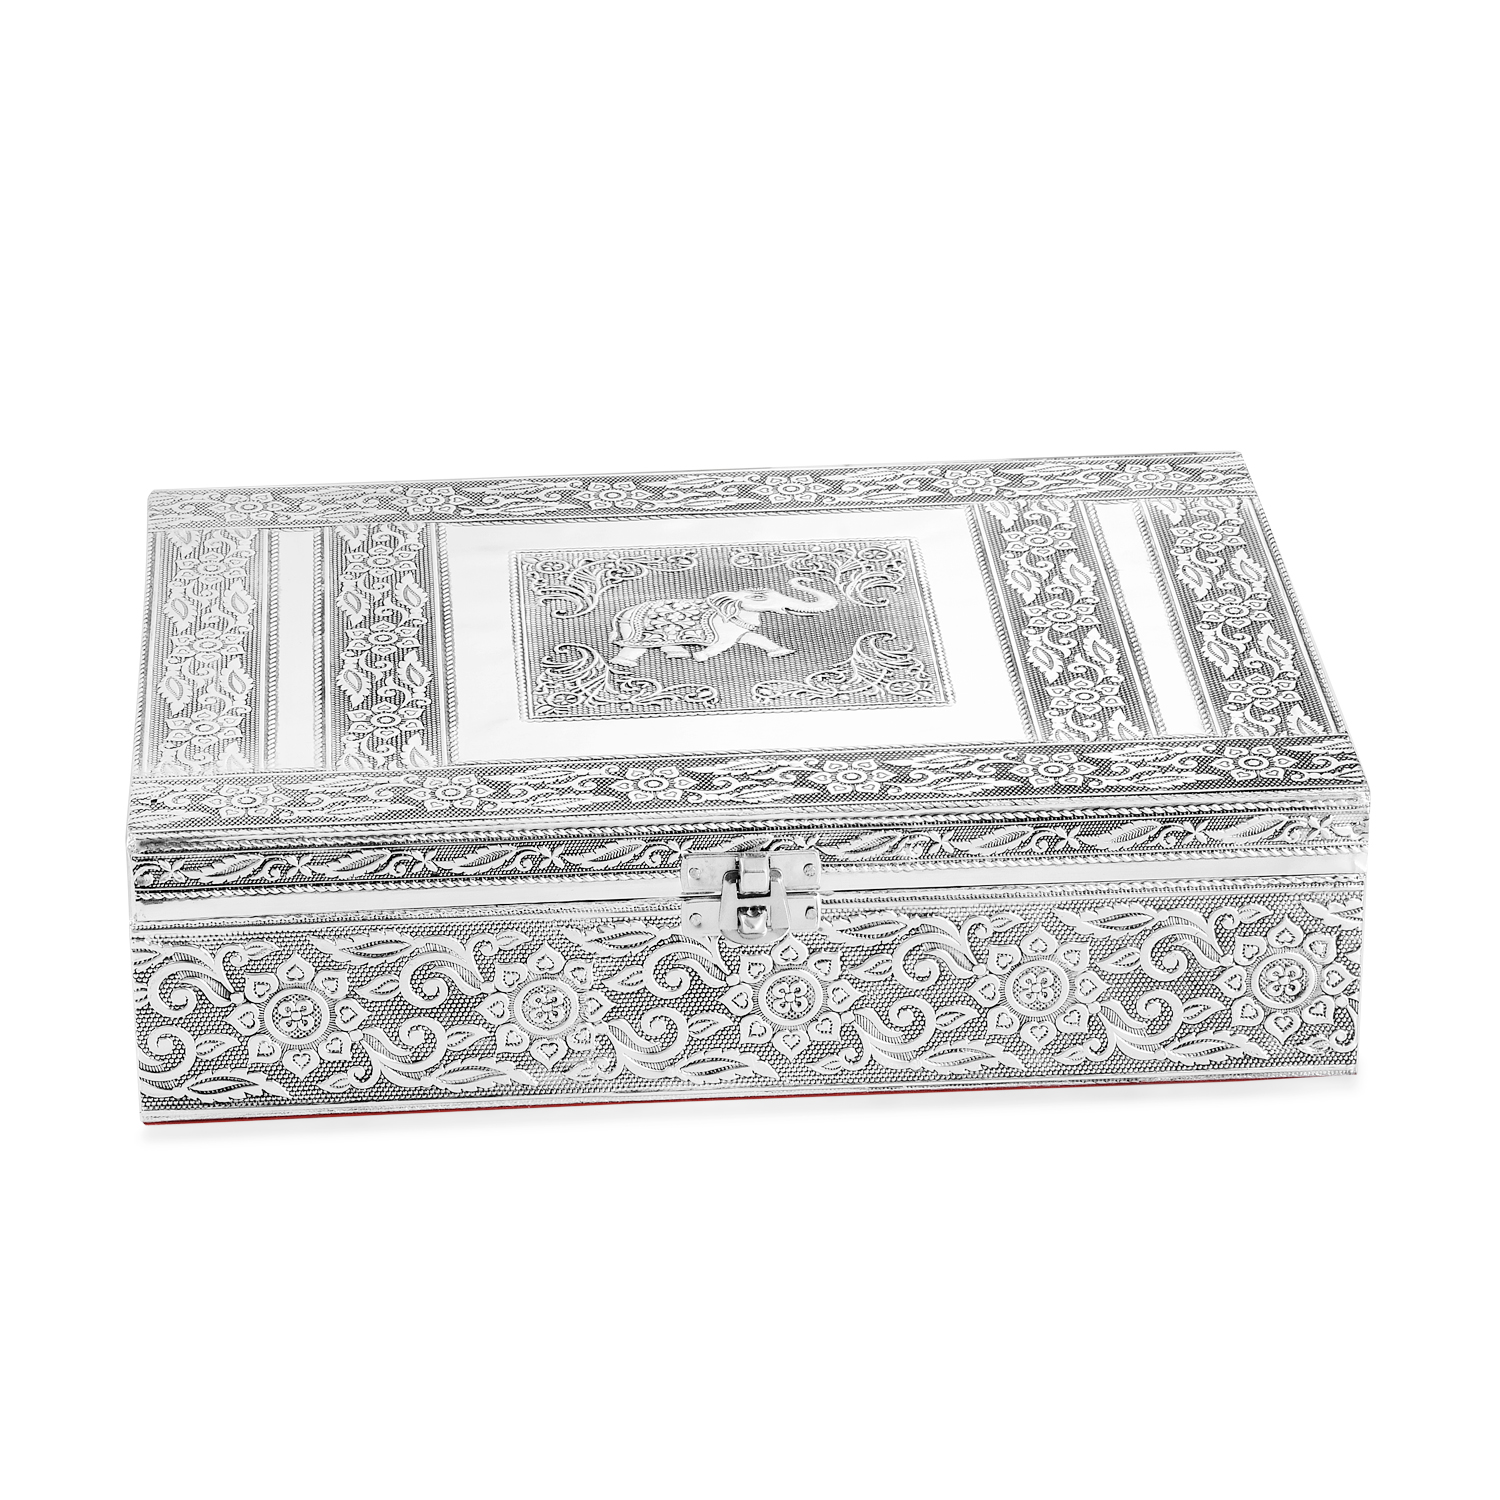 Handcrafted Aluminium Elephant Embossed 2 Tier Jewelry Box (11x3x8 in) with  Scratch Protection Interior